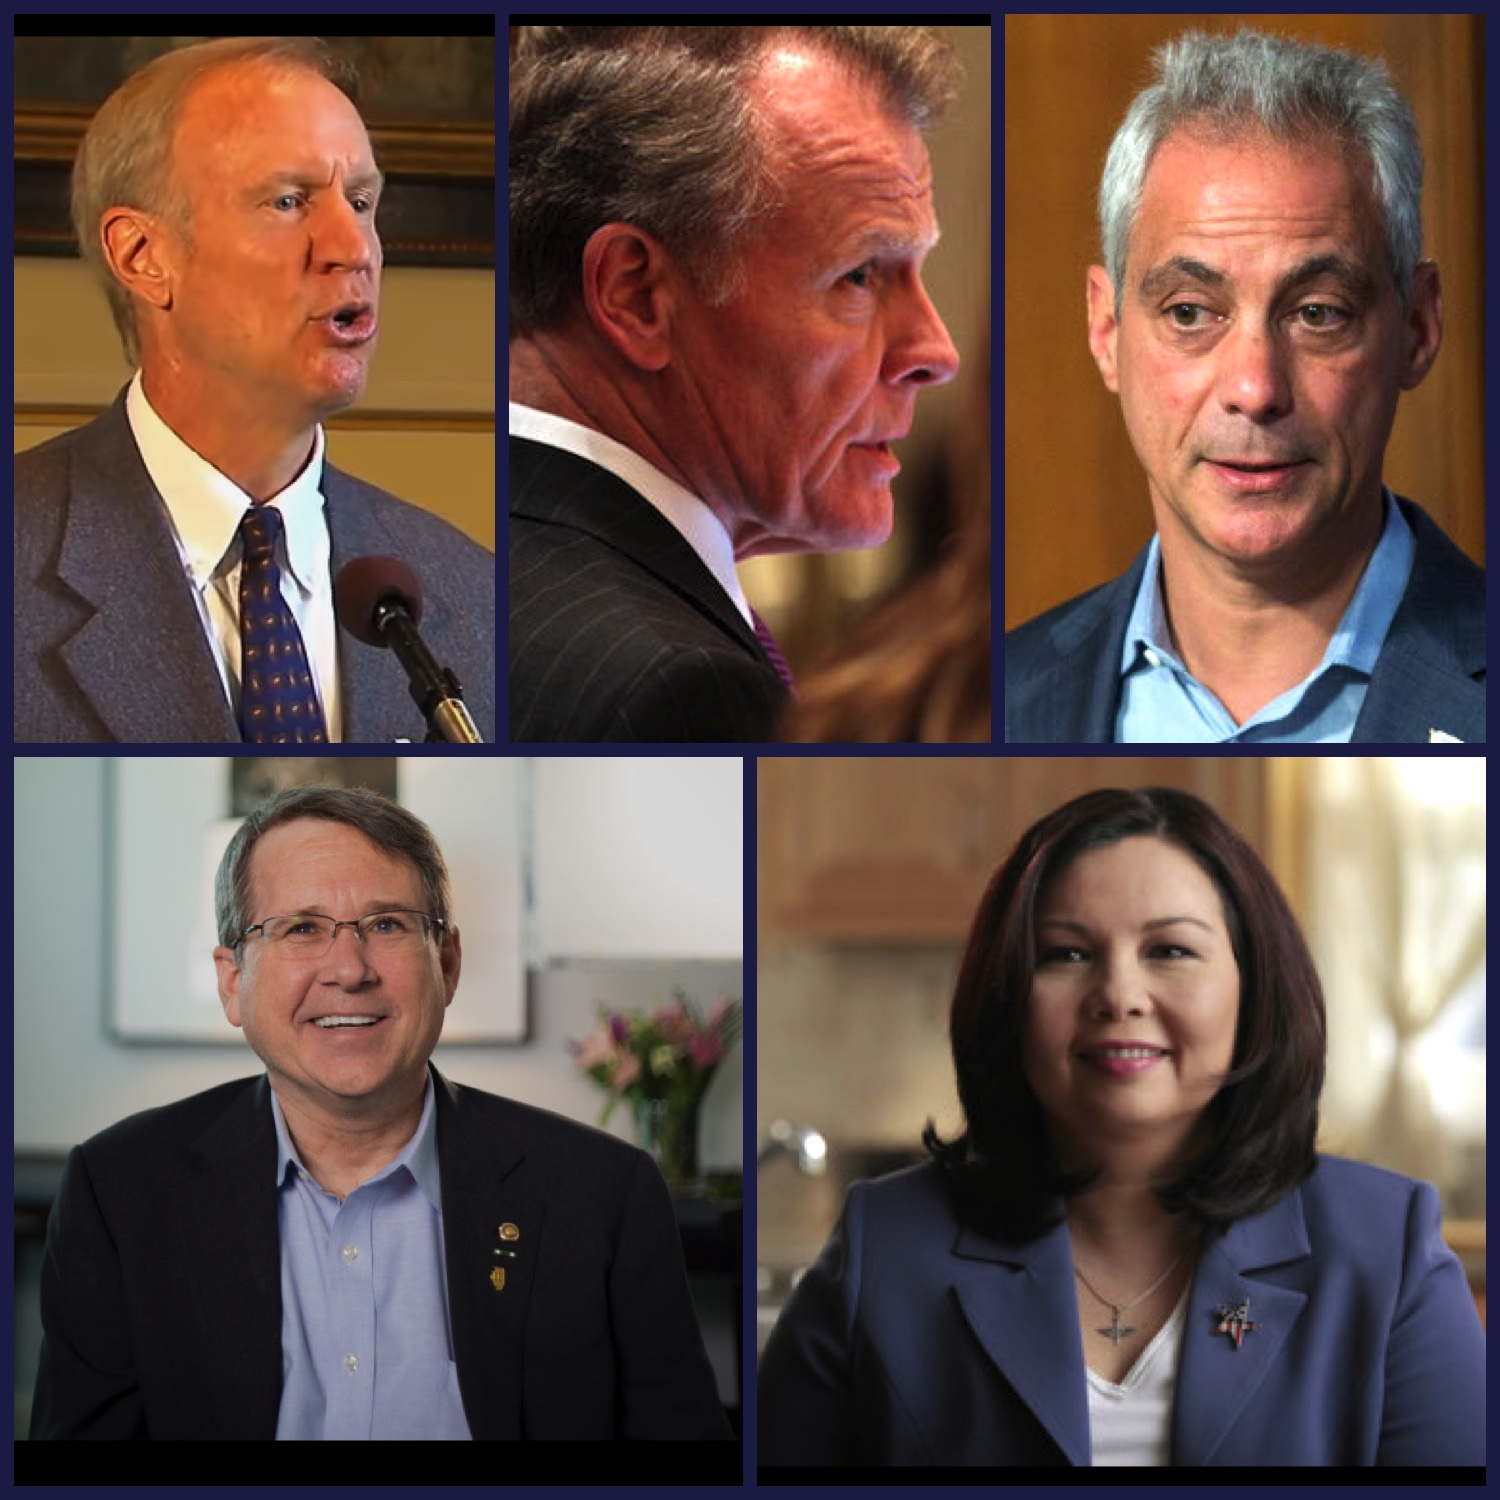 PolitiFact Illinois will research and rate newsworthy claims and assertions made by politicians, public figures and pundits in Illinois.